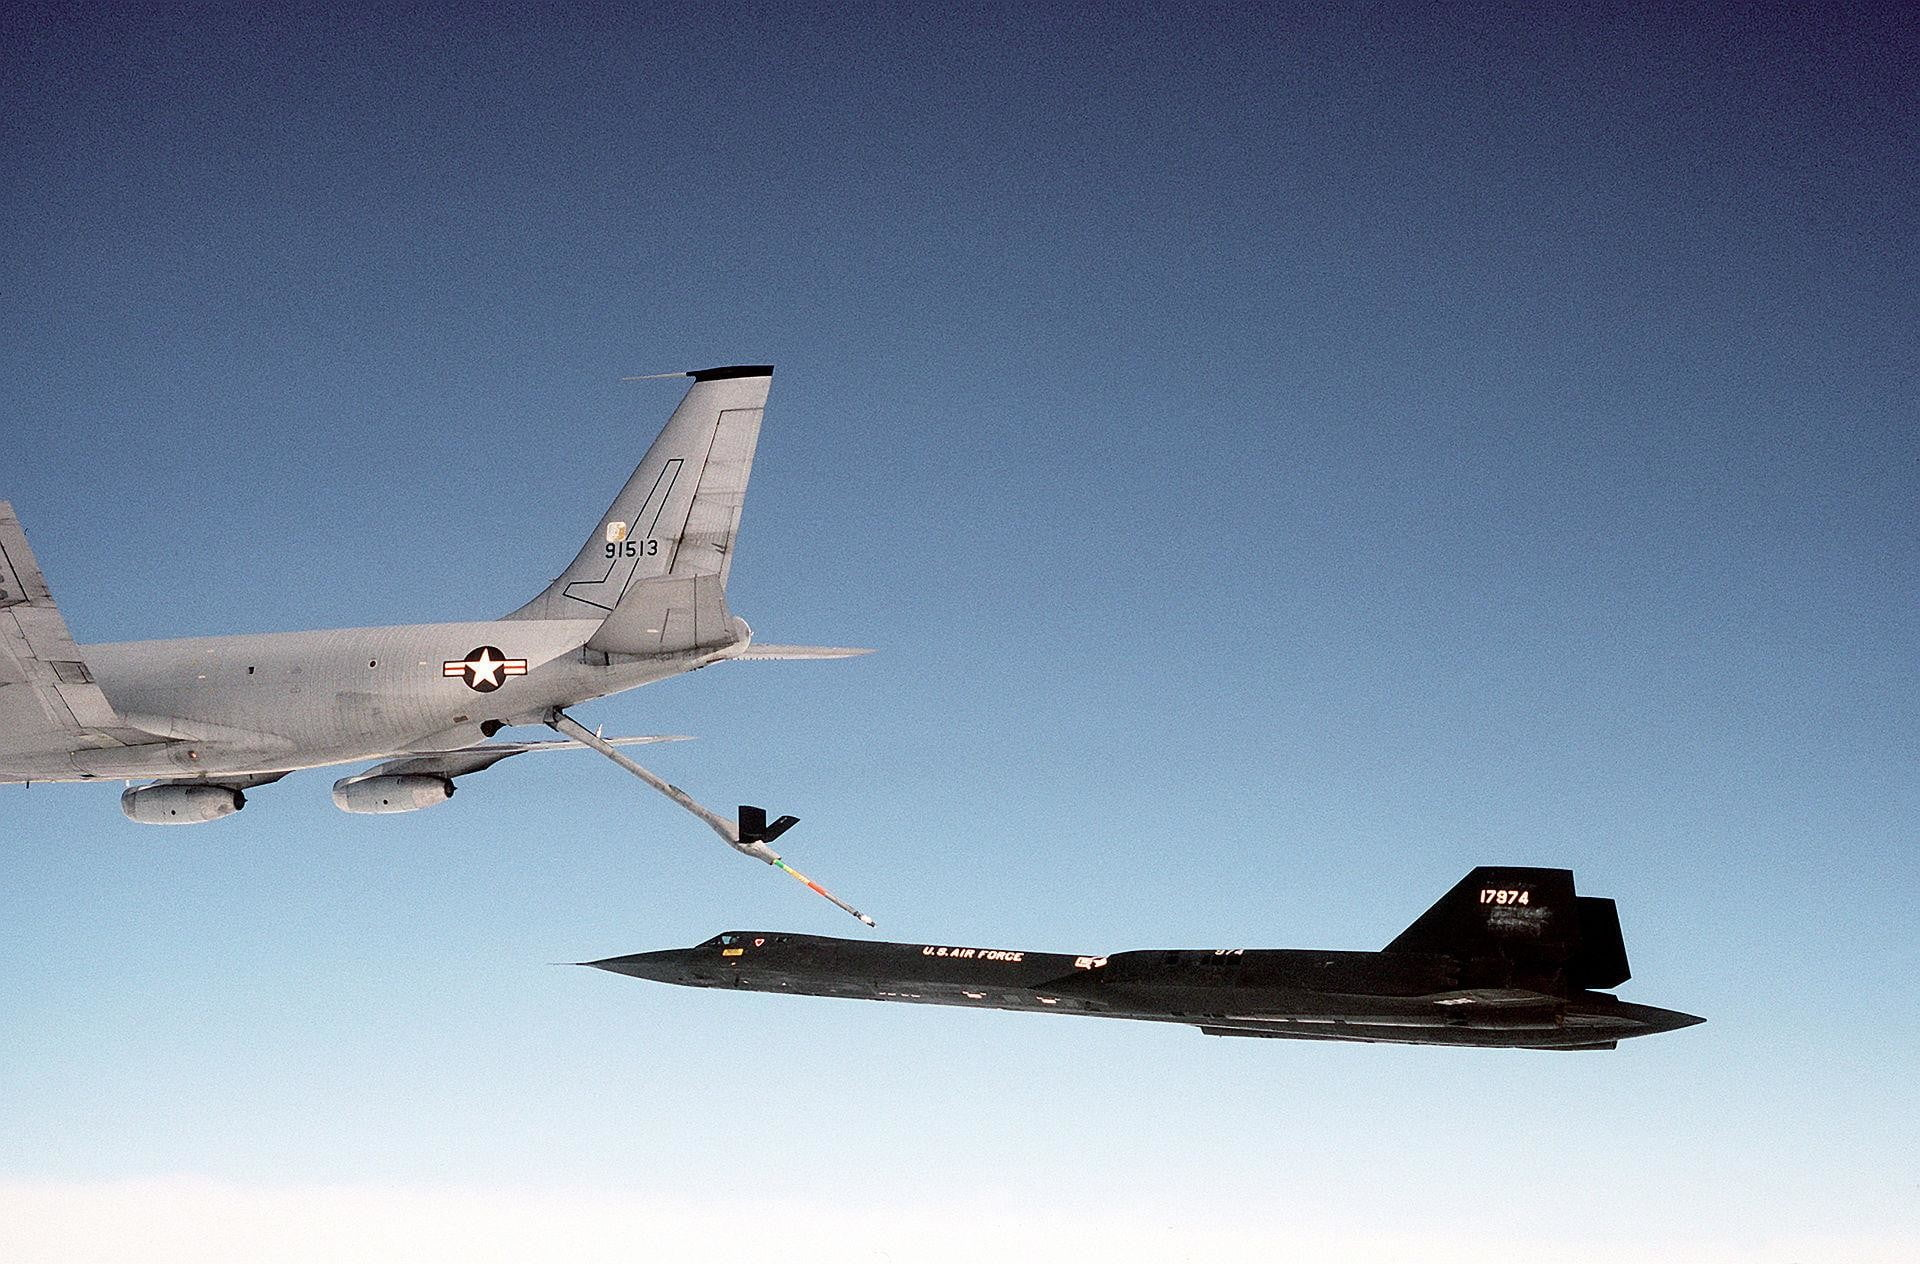 CIA shows the differences between A-12 and SR-71 craft